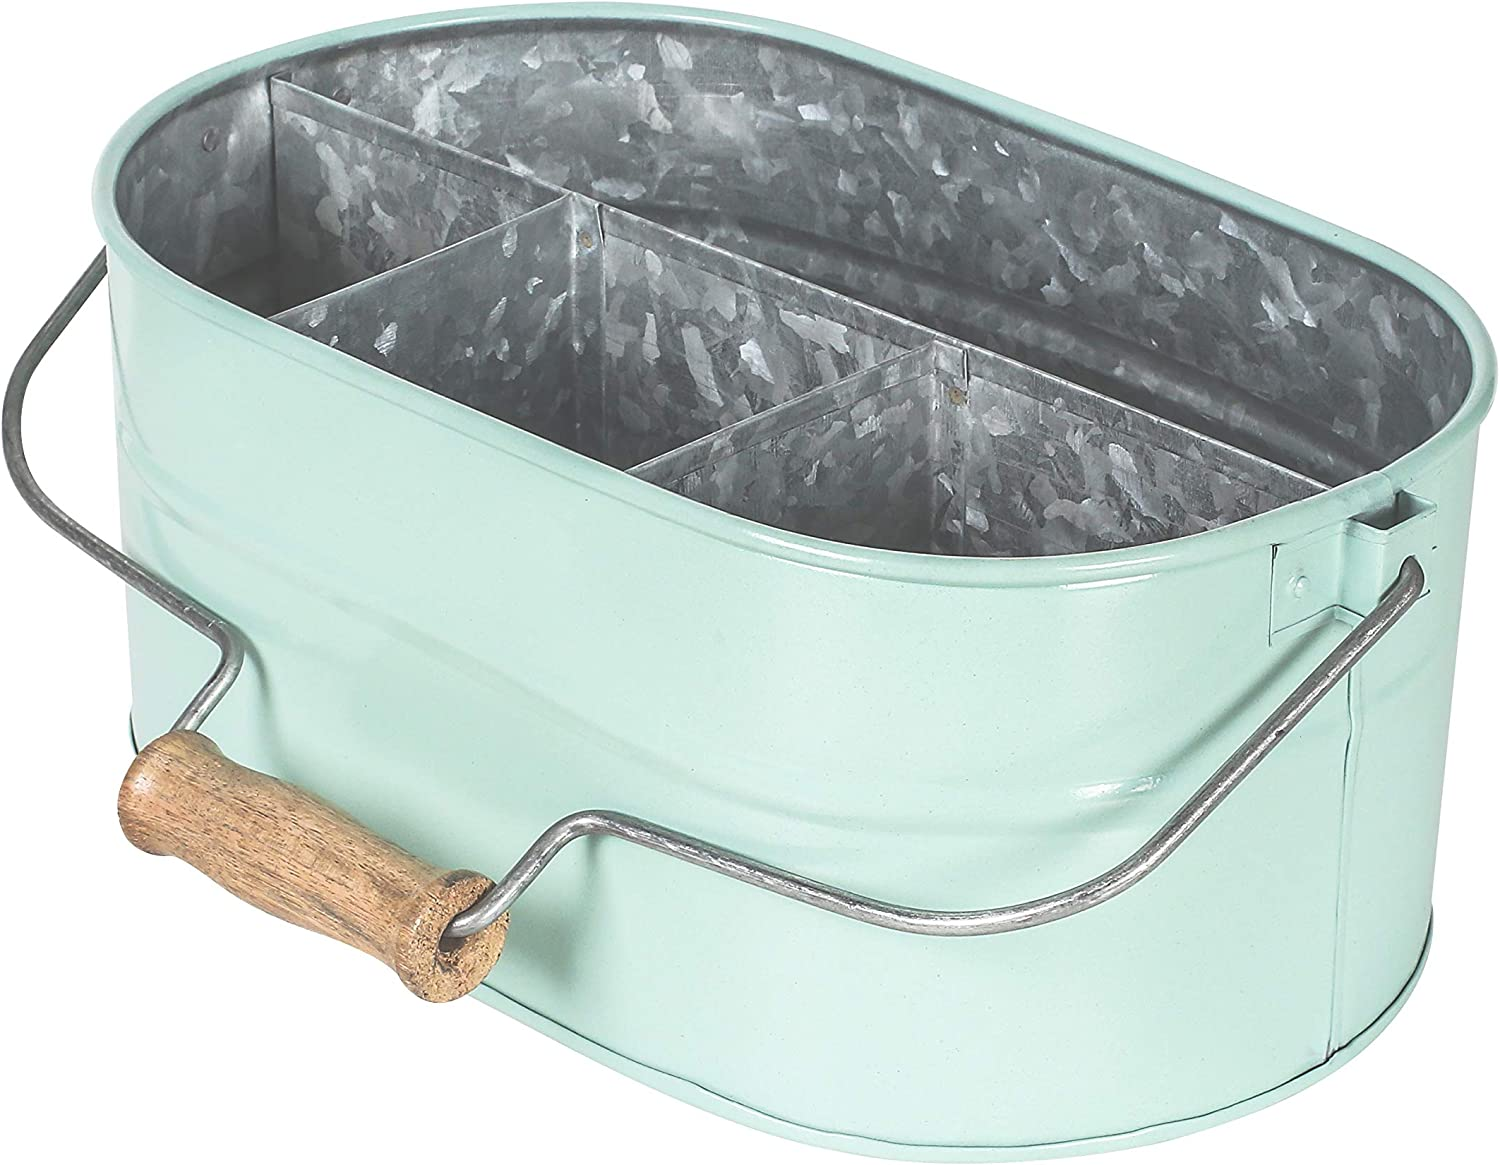 Galvanized Metal Caddy with 4 Compartments, Kitchen Utensil Holder, Metal Caddy, Picnic Caddy, Rustic Farmhouse Galvanized, Multipurpose Storage Bin, Metal Garden Planters- Aqua